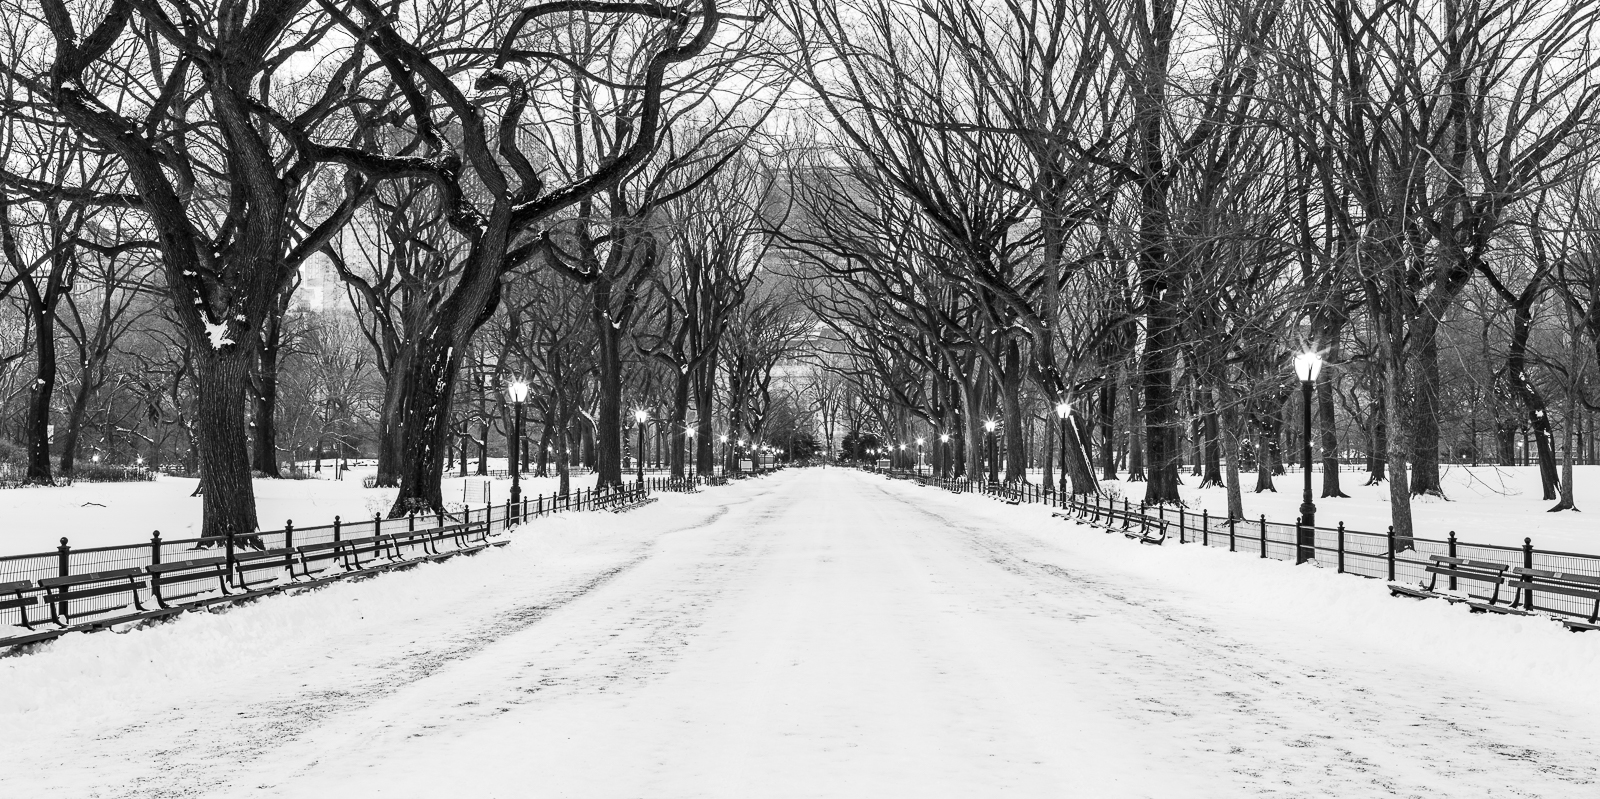 Winter, New York, snow, park, Snow, Winter, BW, B&W, Black, White, photo